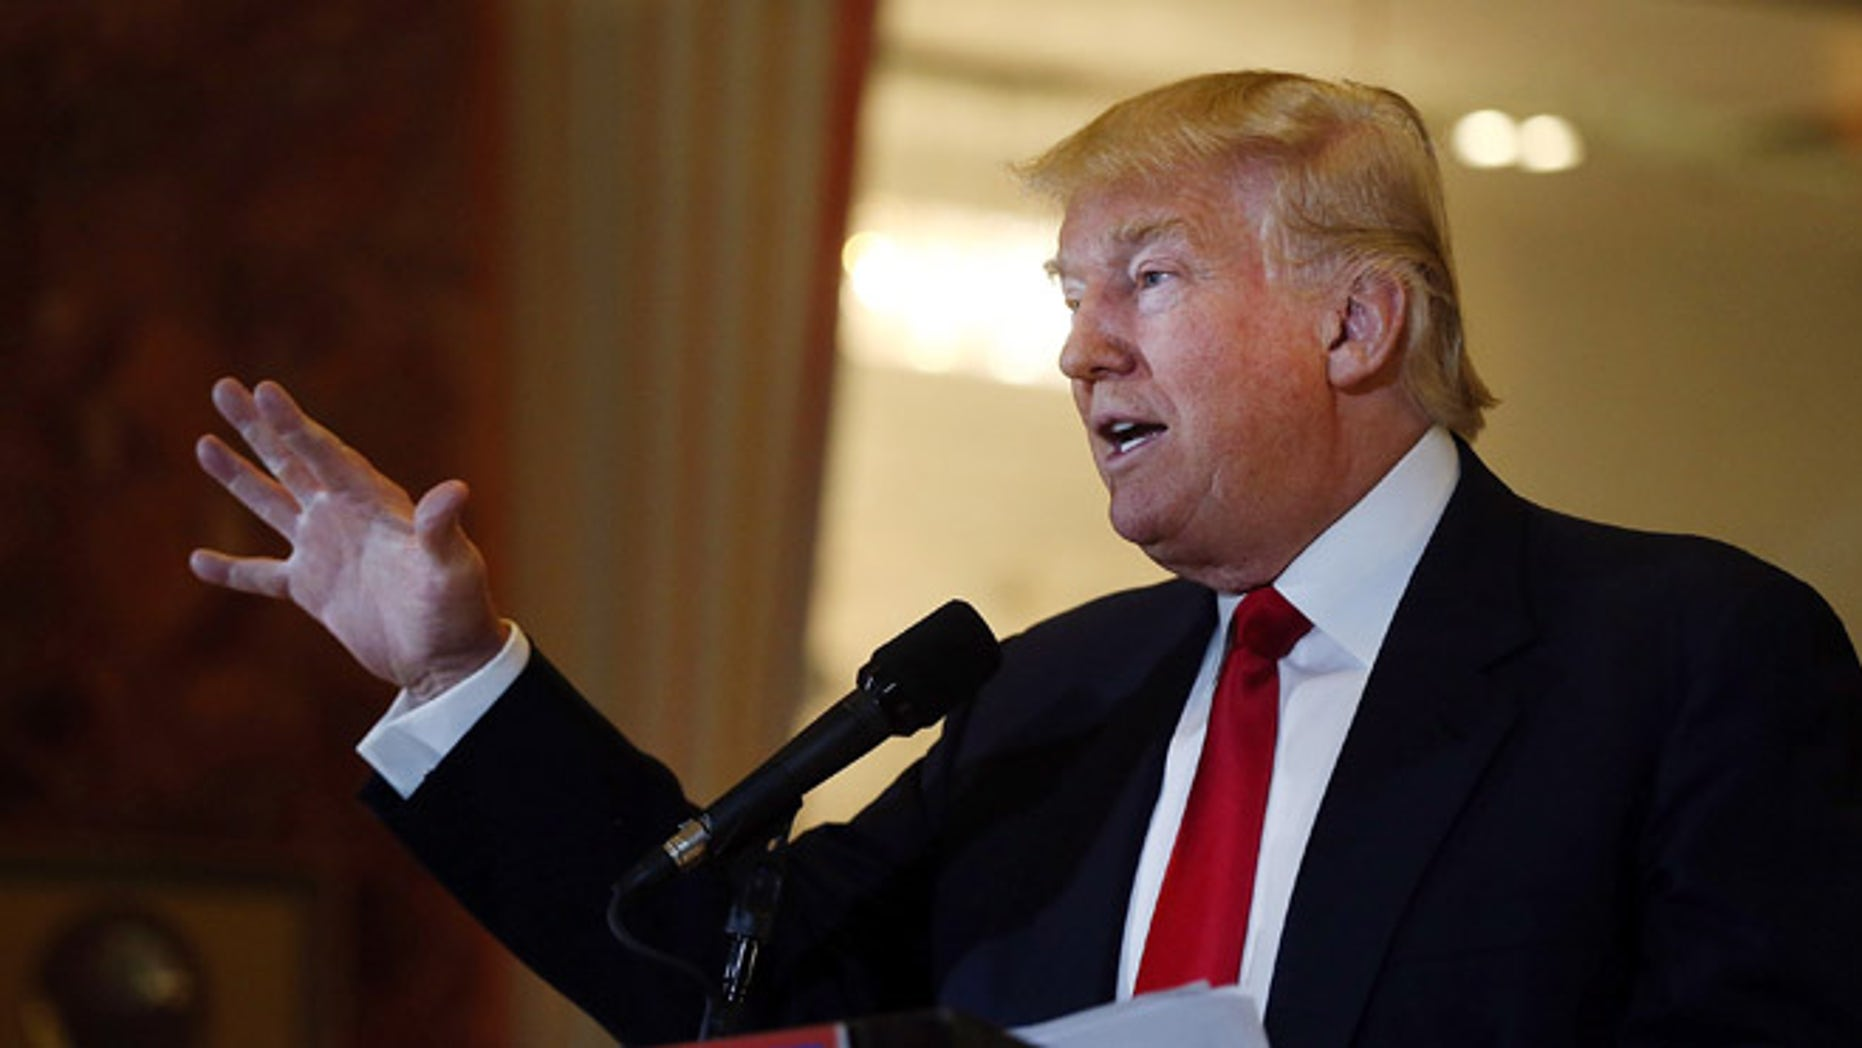 NEW YORK, NY - MAY 31:  Republican presidential candidate Donald Trump speaks at a news conference at Trump Tower where he addressed issues about the money he pledged to donate to veterans  groups following a skipped a debate in January before the Iowa caucuses on May 31, 2016 in New York City. Trump had previously said he had raised $6 million at the nationally broadcast fund-raiser he attended instead of the debate and that he would donate it all to veterans groups.  (Photo by Spencer Platt/Getty Images)